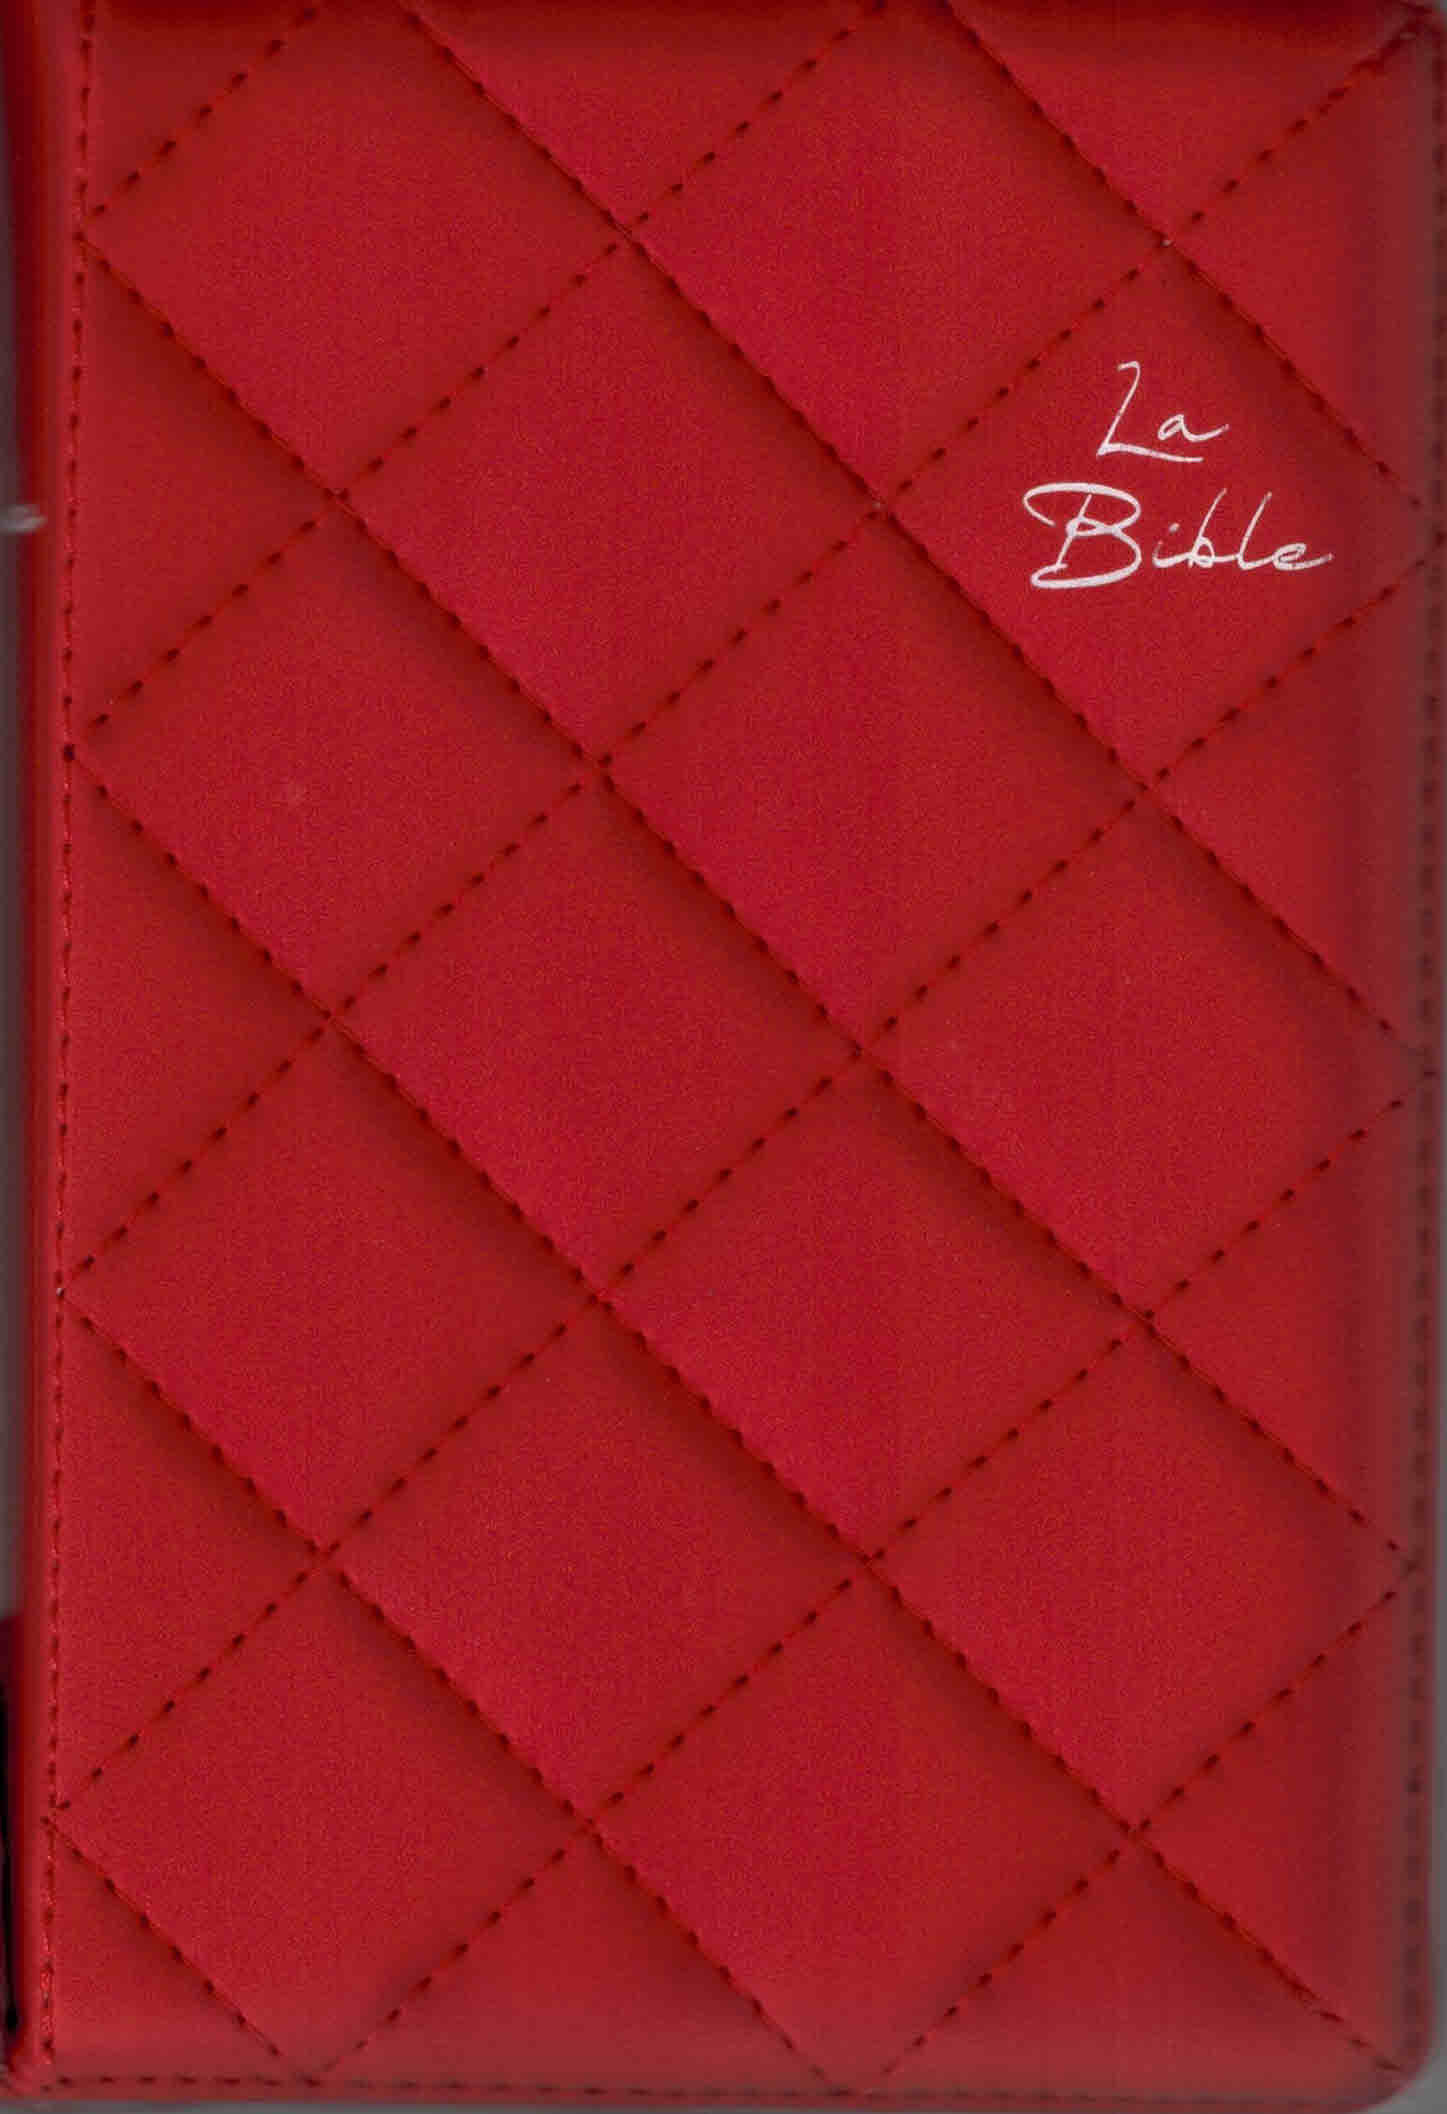 Bible SG 21 Compacte rouge onglets